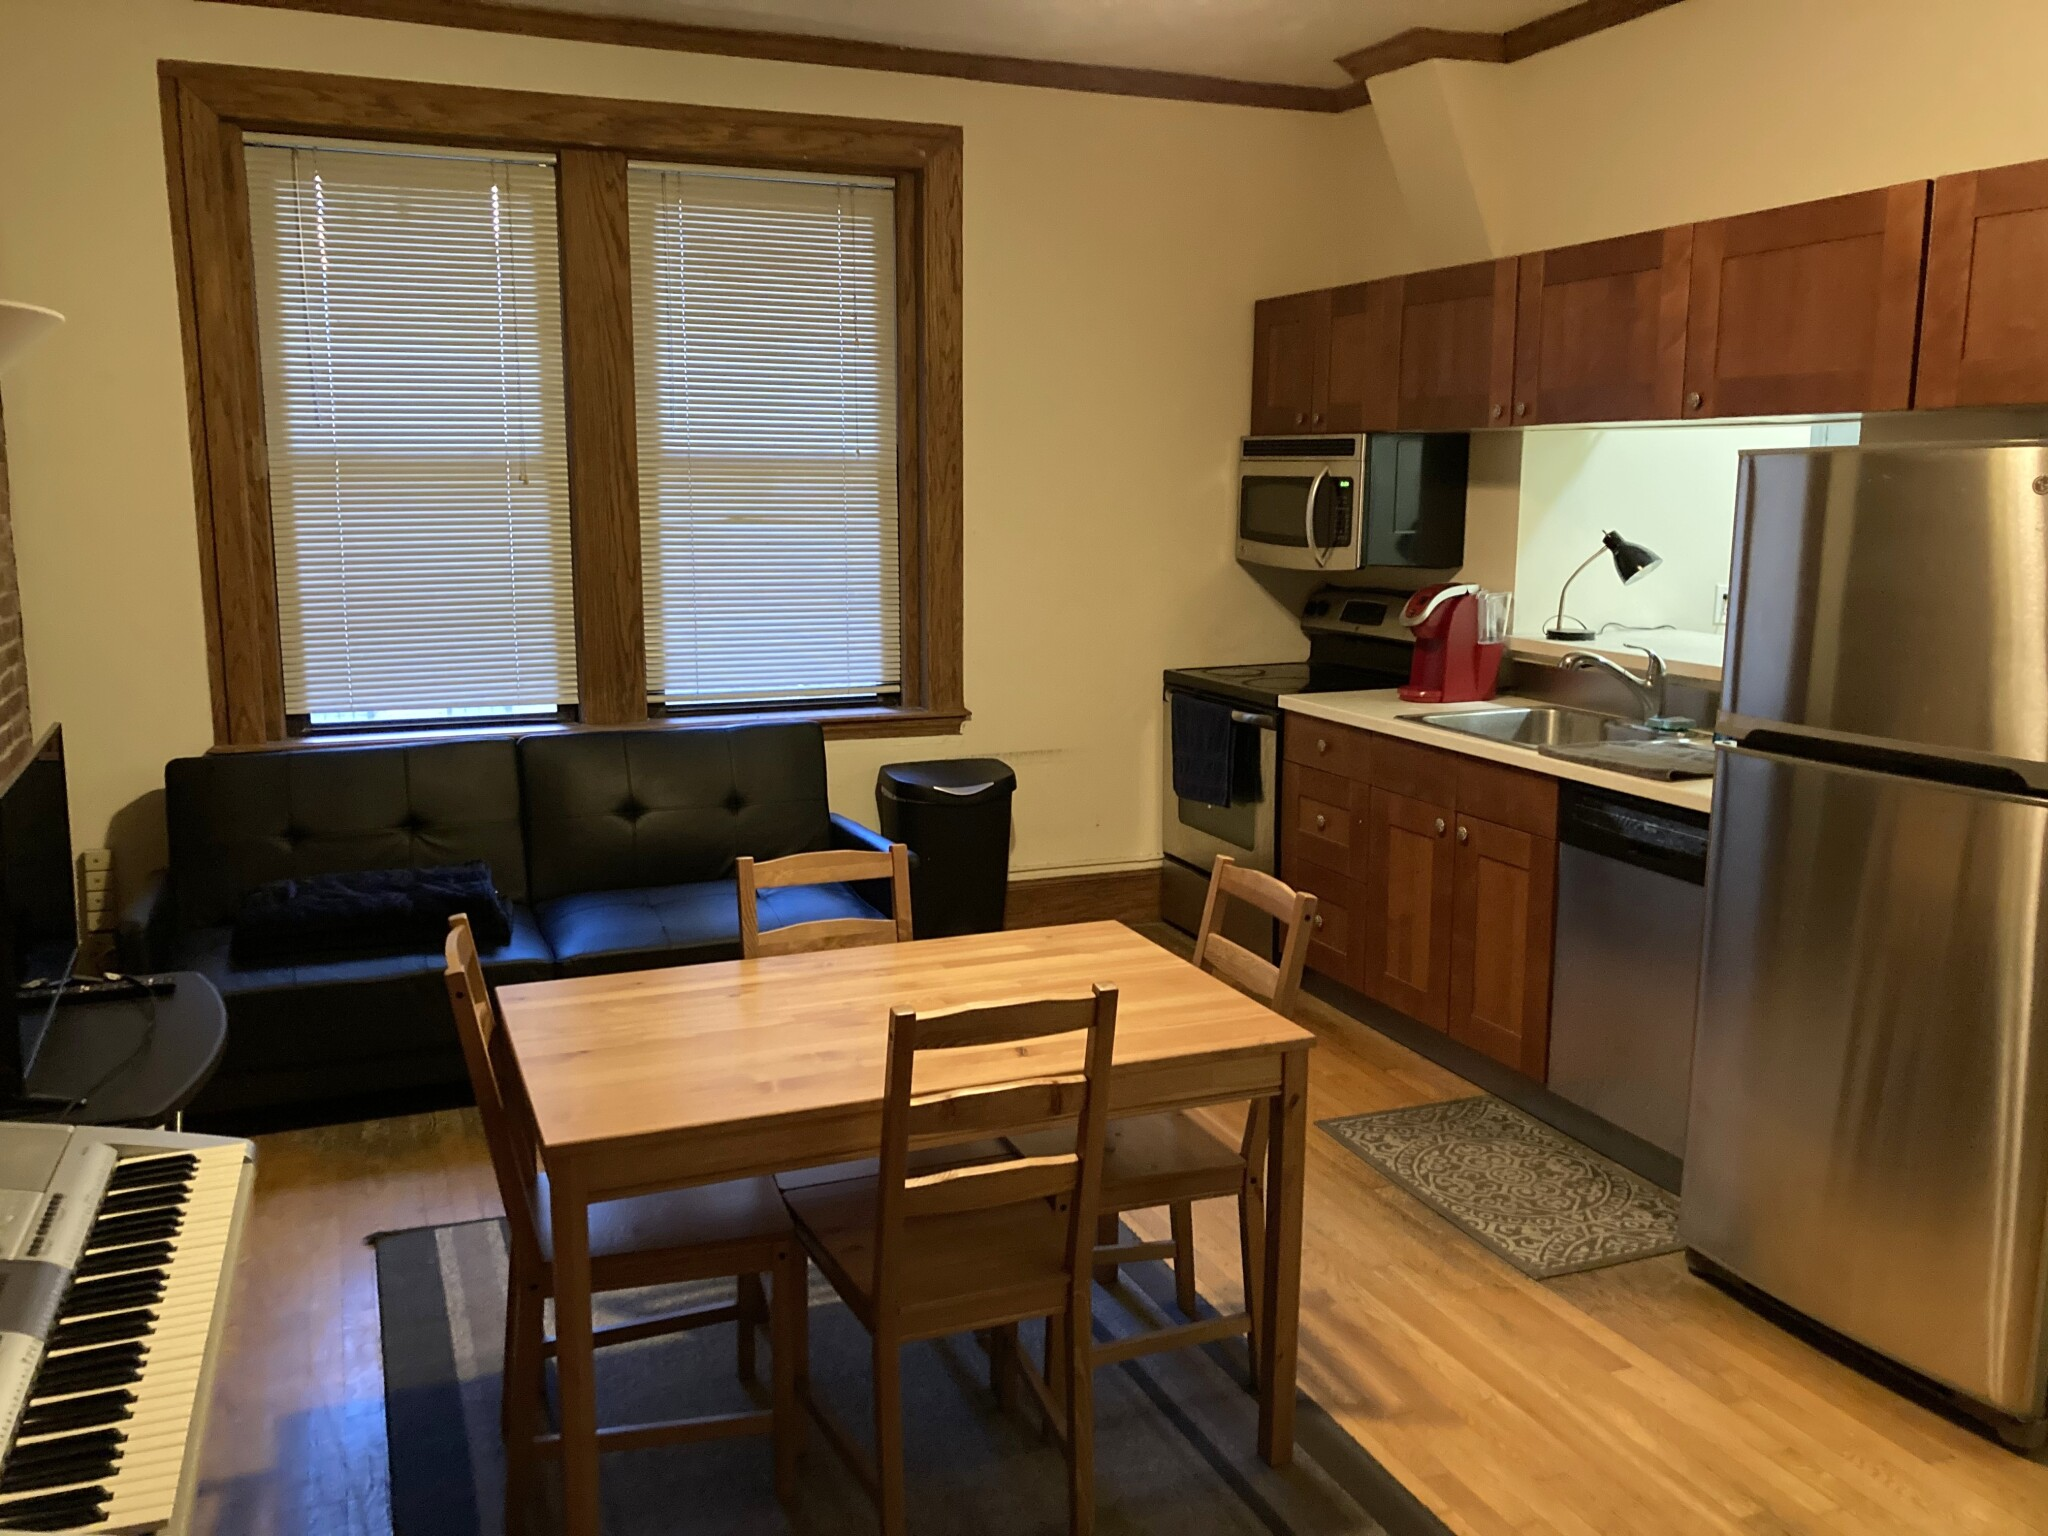 1 Bed, 1 Bath apartment in Boston, Fenway for $2,700